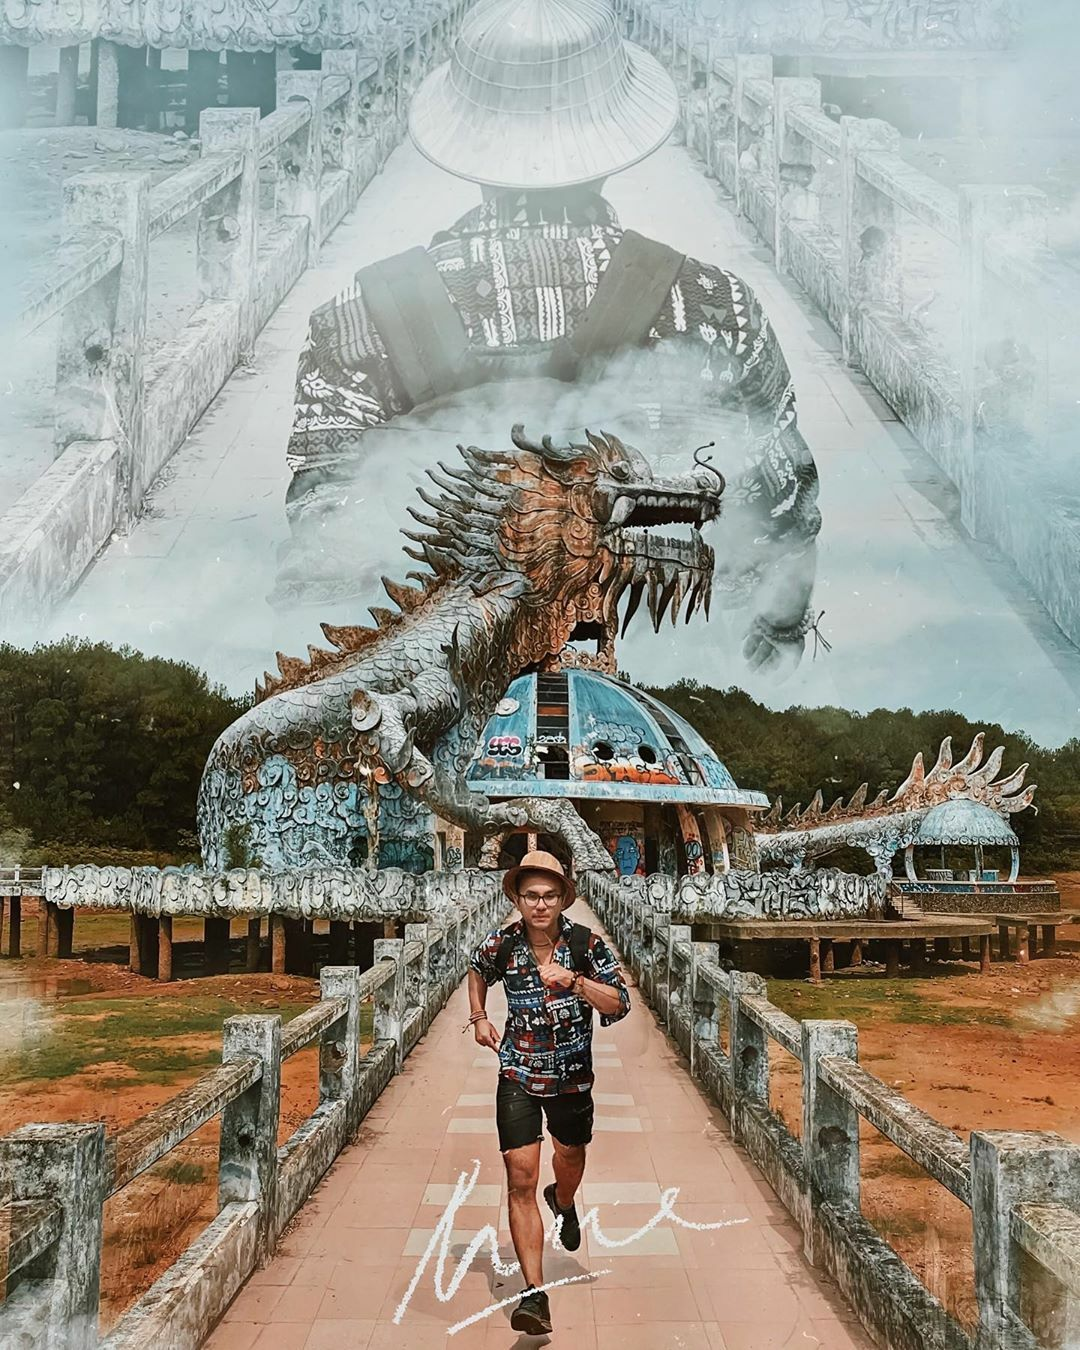 vietnamese abandoned water park under the lens of foreign tourists